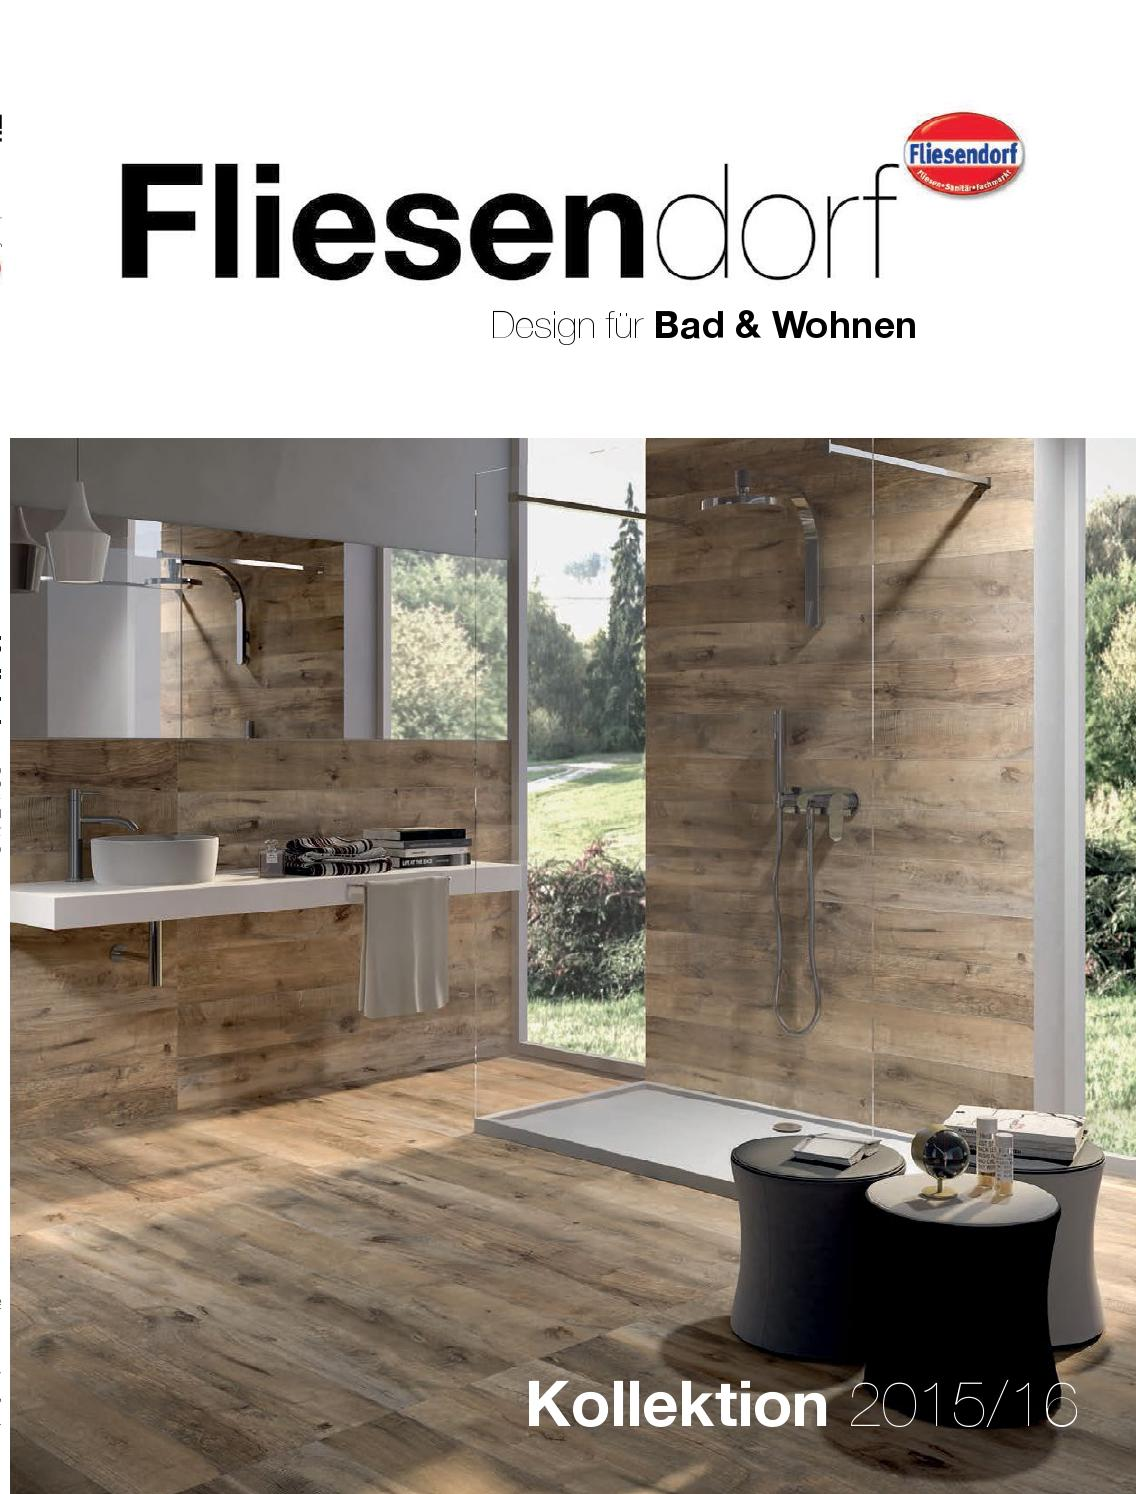 Fliesendorf kollektion 2015 2016 by issuu for Boden trends 2016